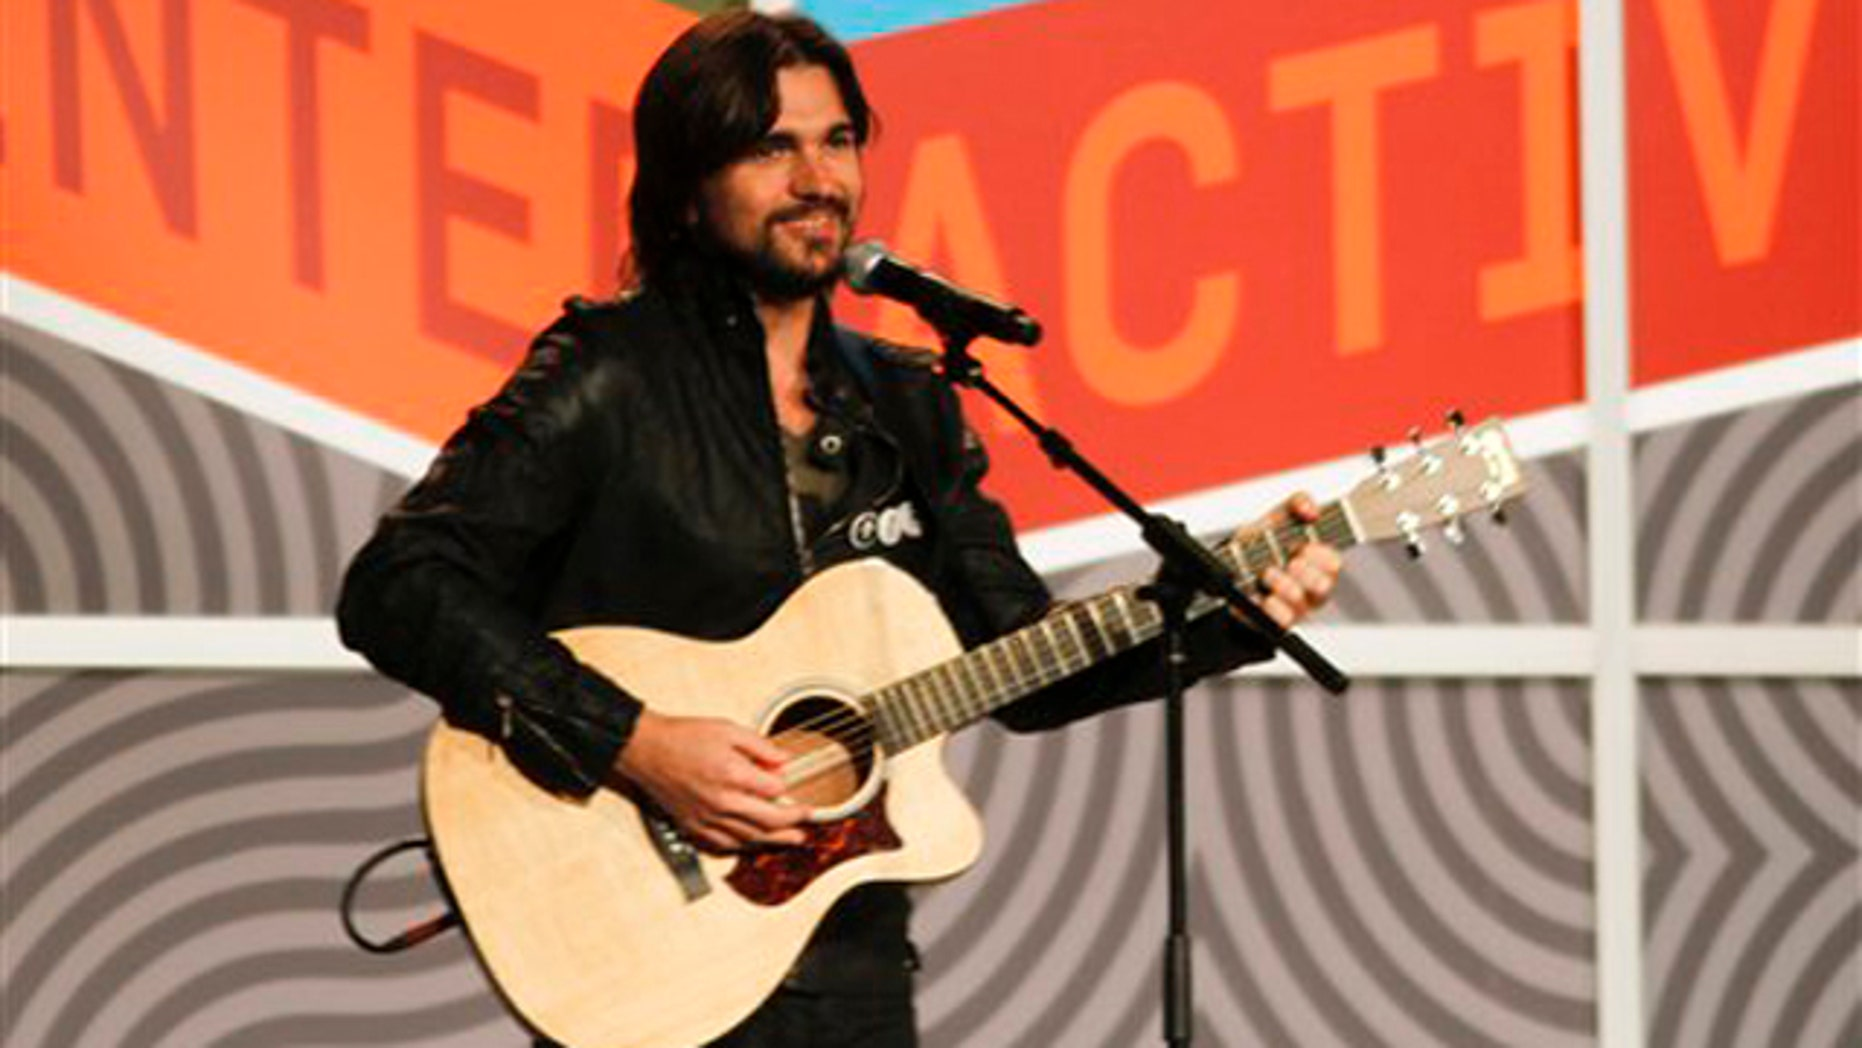 March 15, 2012: Colombian singer Juanes performs a Woody Guthrie song during the SXSW Music Festival in Austin, Texas.